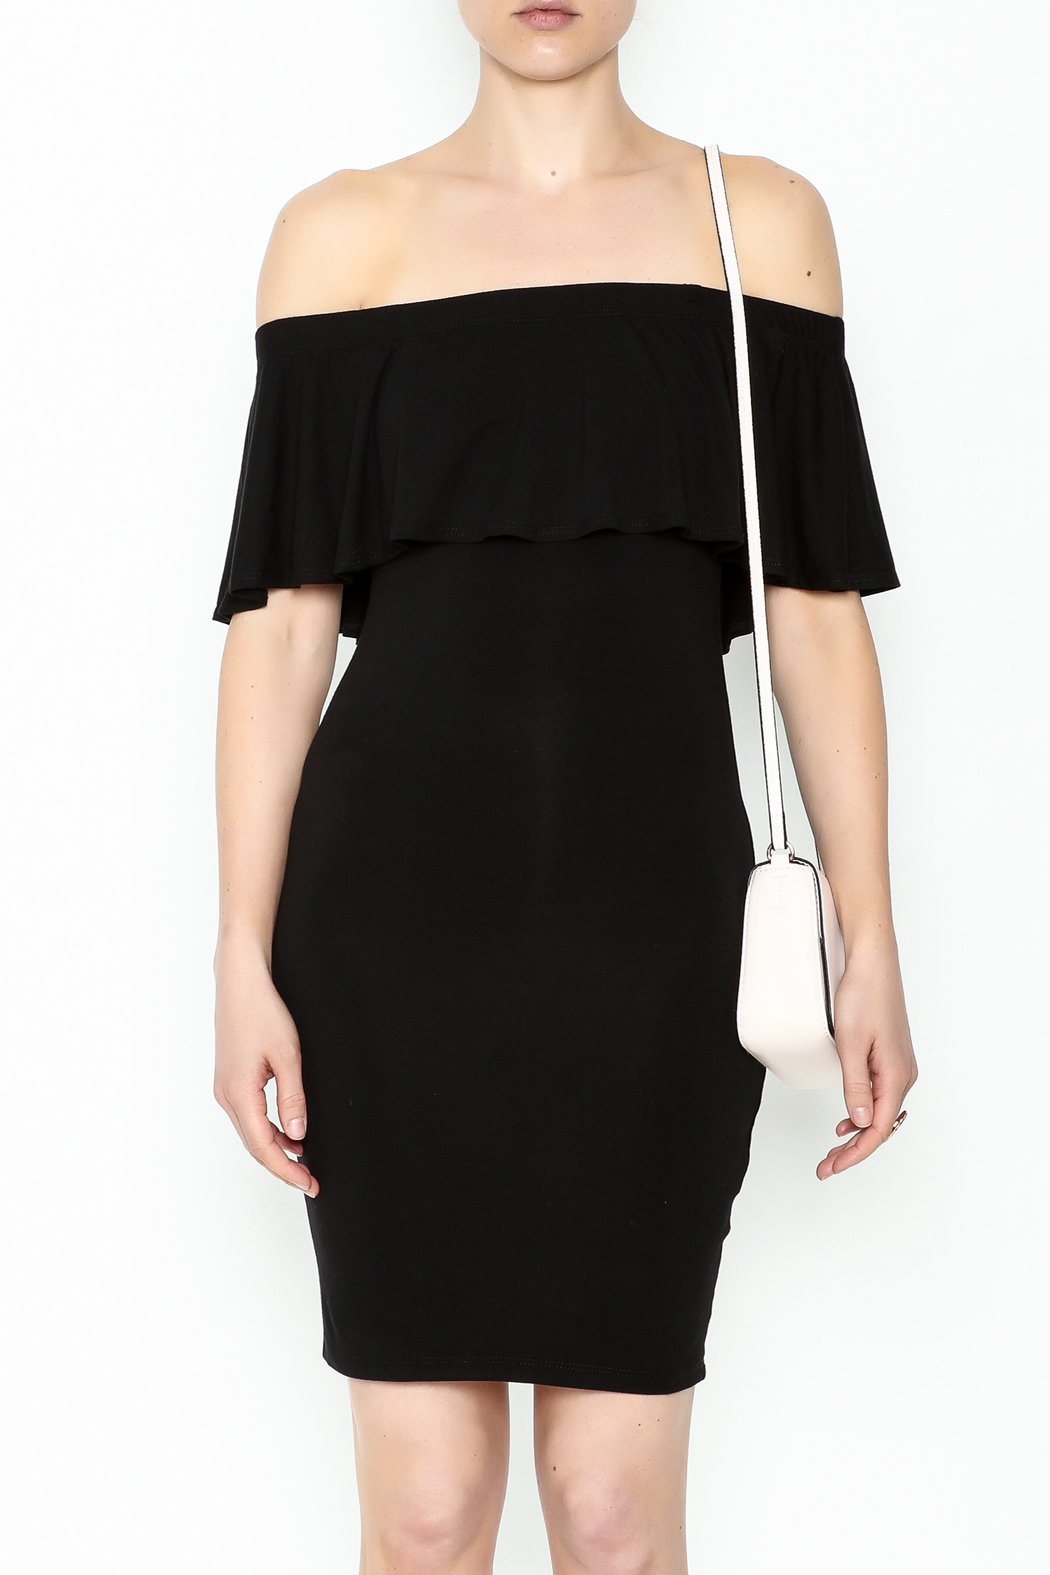 Audrey 3+1 Off Shoulder Cindy Dress - Front Full Image